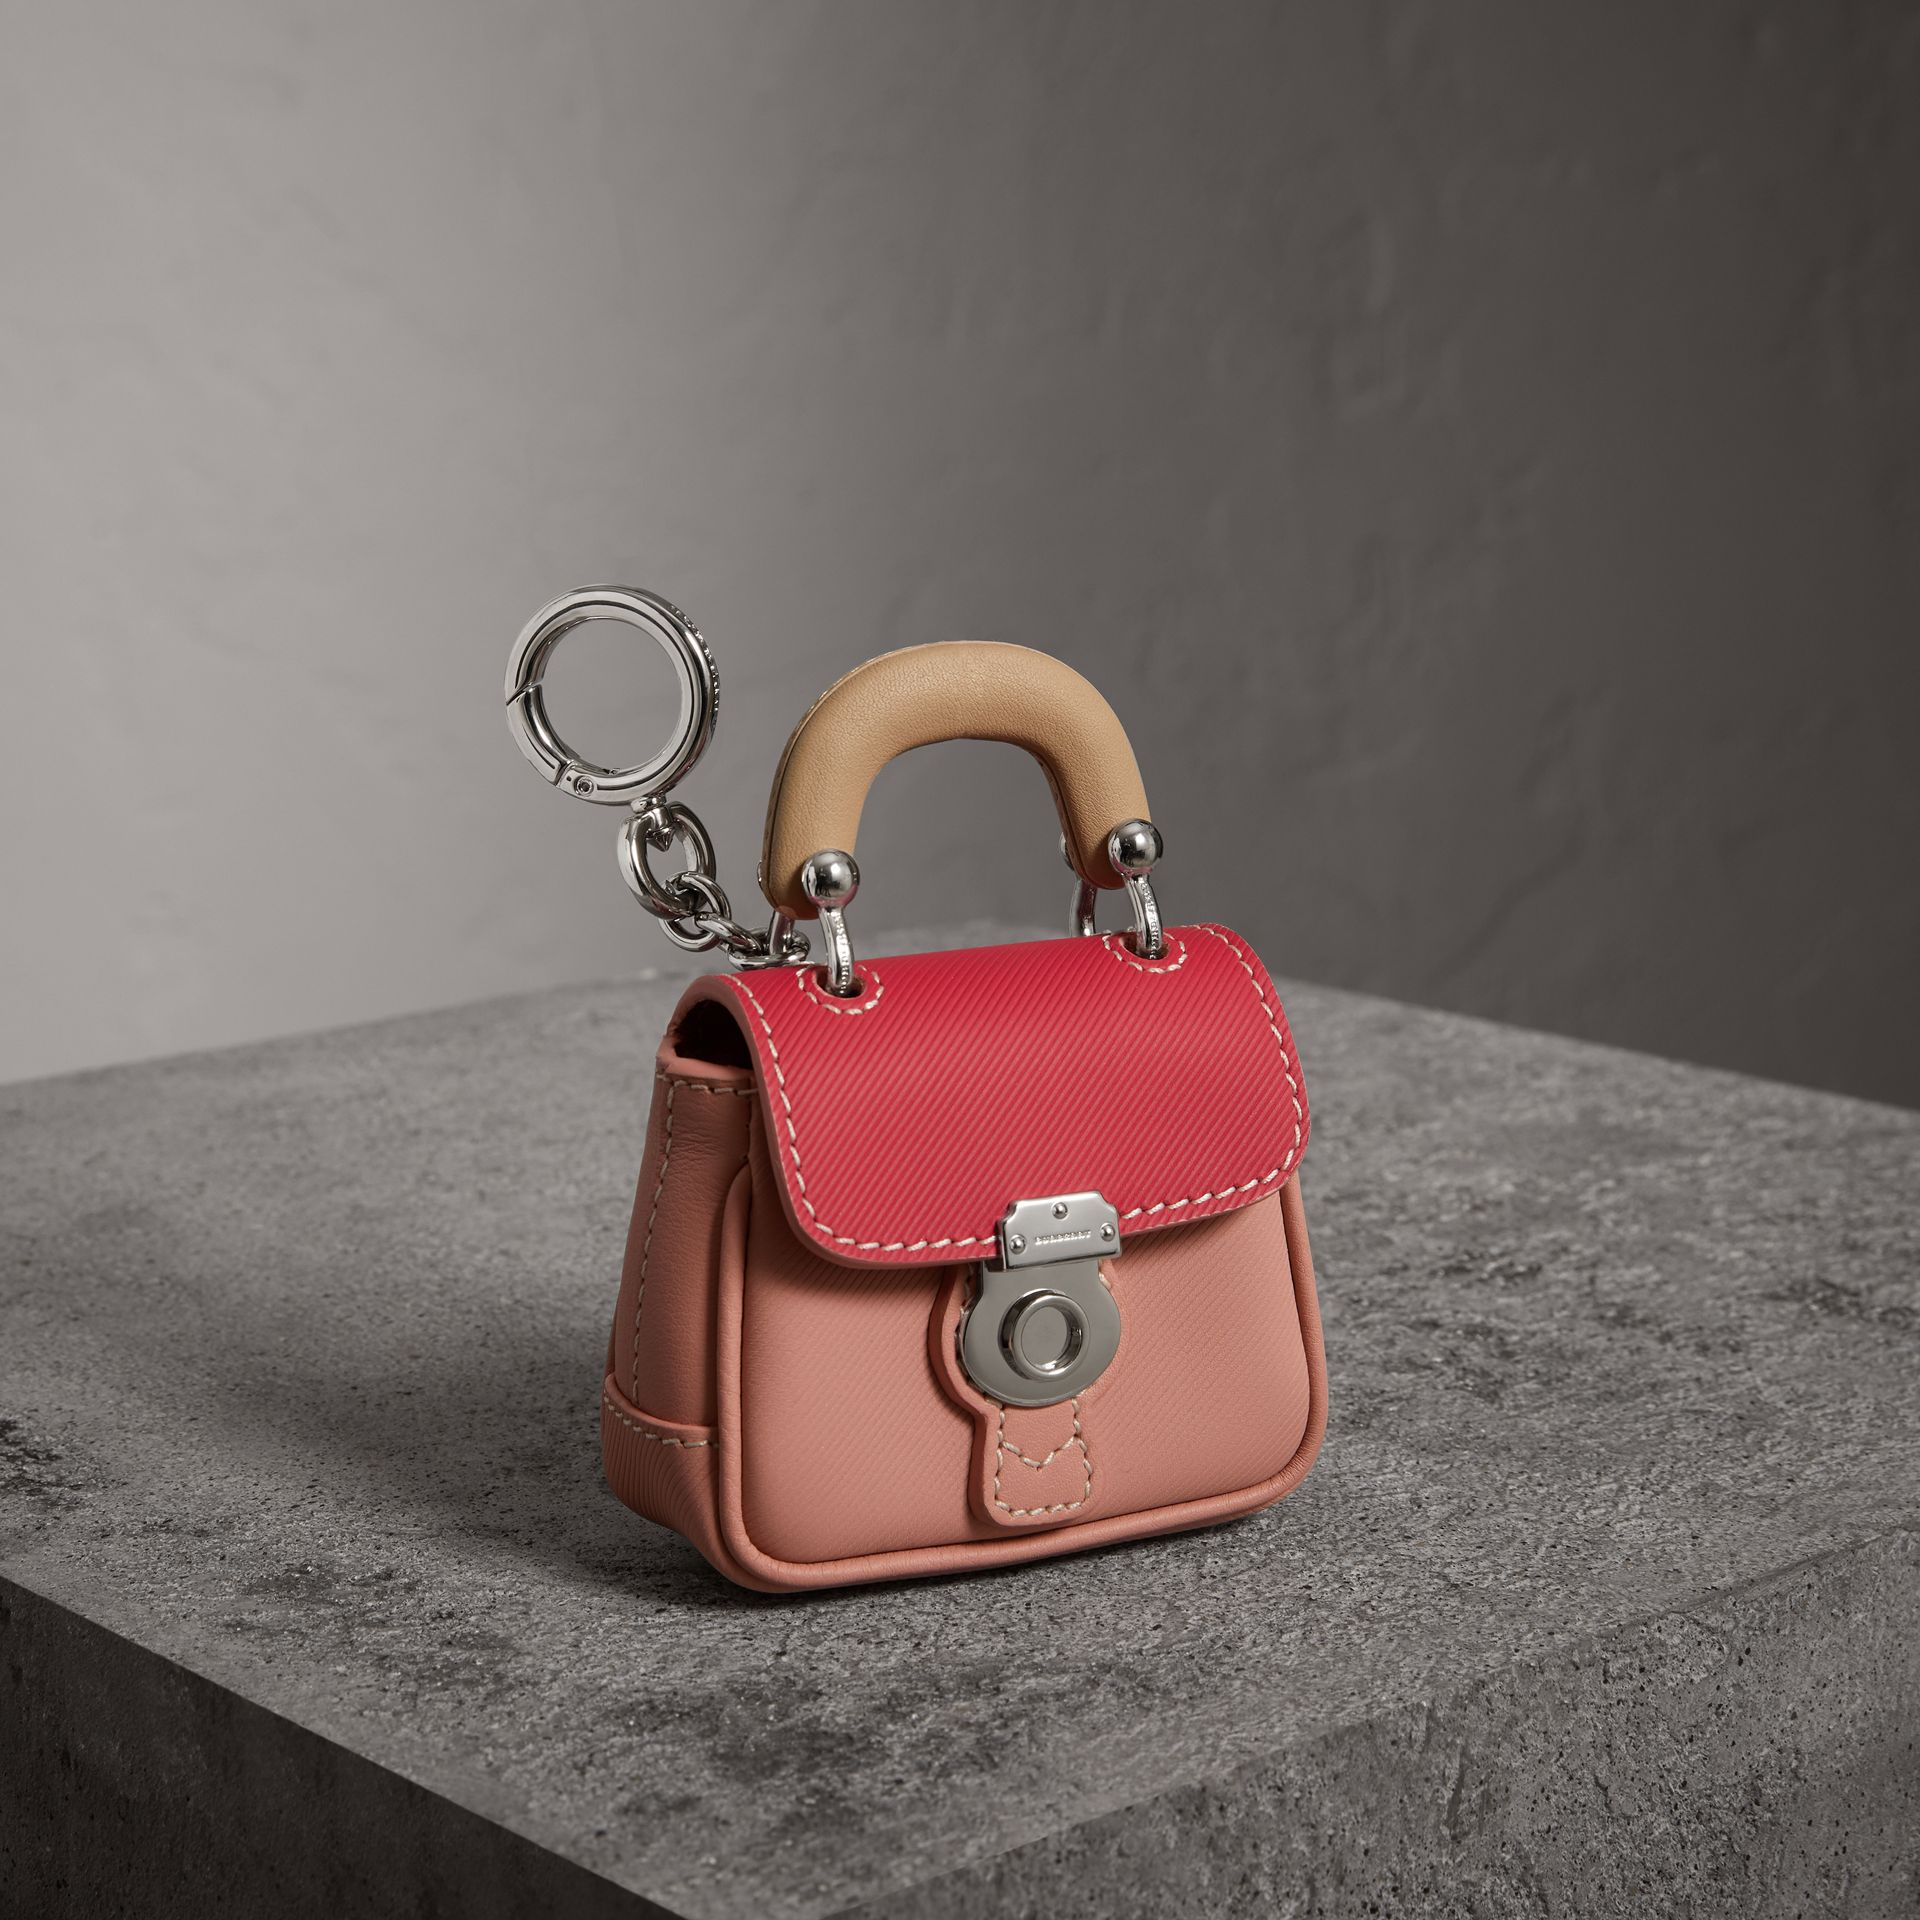 The DK88 Charm in Ash Rose/ Bright Russet | Burberry United Kingdom - gallery image 0